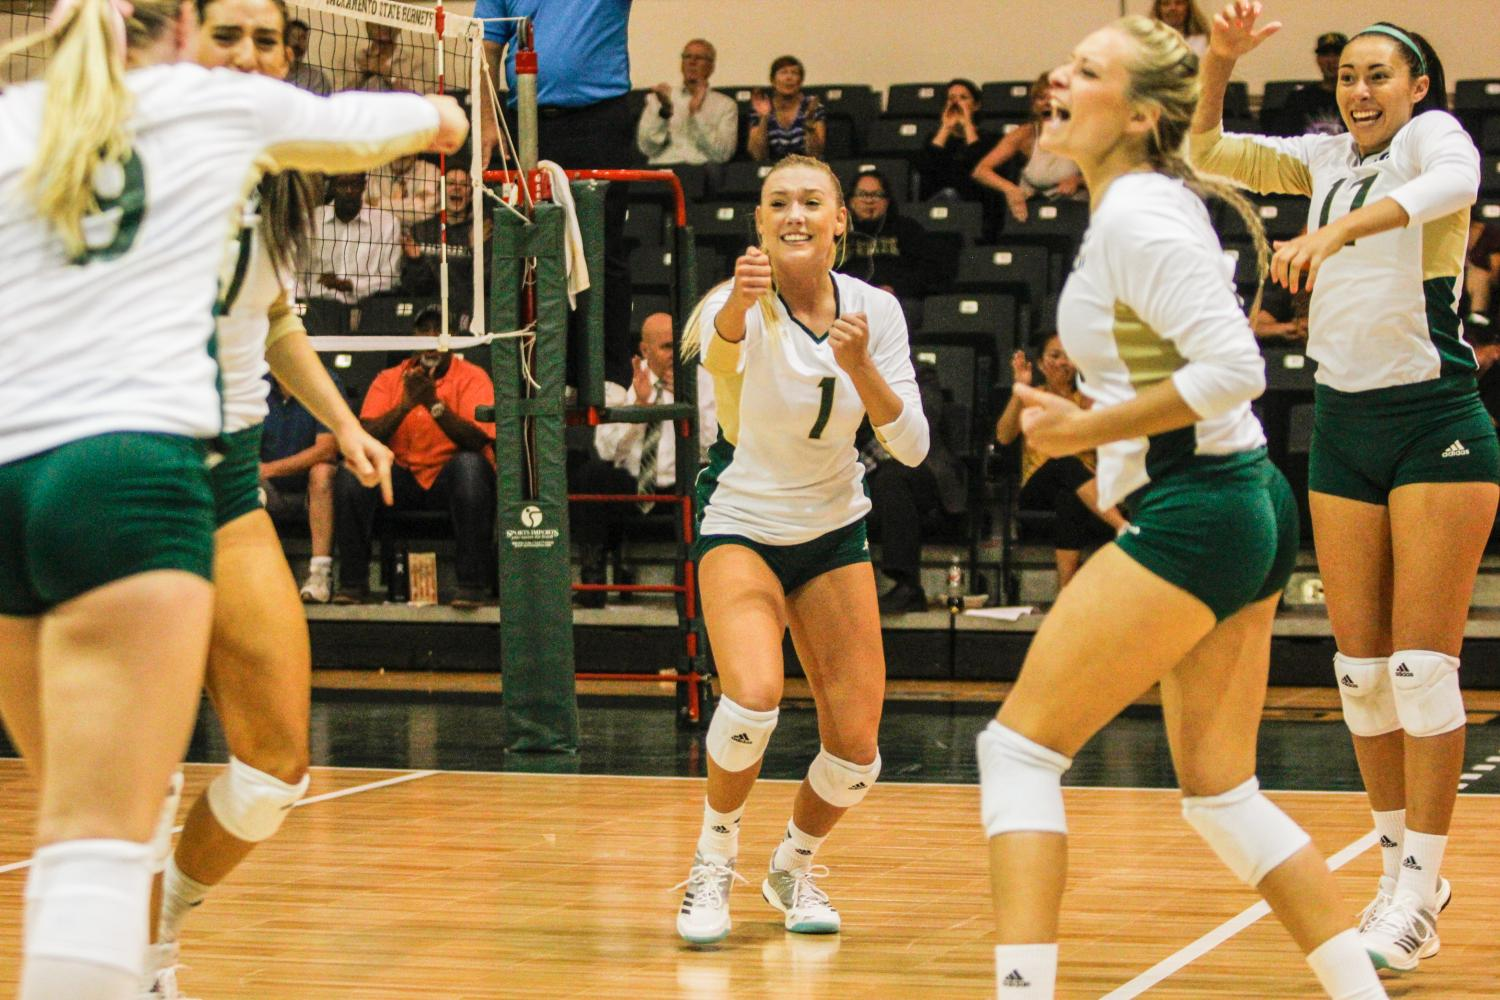 Sacramento State senior setter Kennedy Kurtz, middle, celebrates with teammates after a kill by senior outside hitter Shannon Boyle in set five against North Dakota at Colberg Court in the Nest on Thursday, Oct. 5, 2017. After defeating Portland State on Oct. 7, Sac State clinched its first Big Sky Conference regular season championship since 2007.